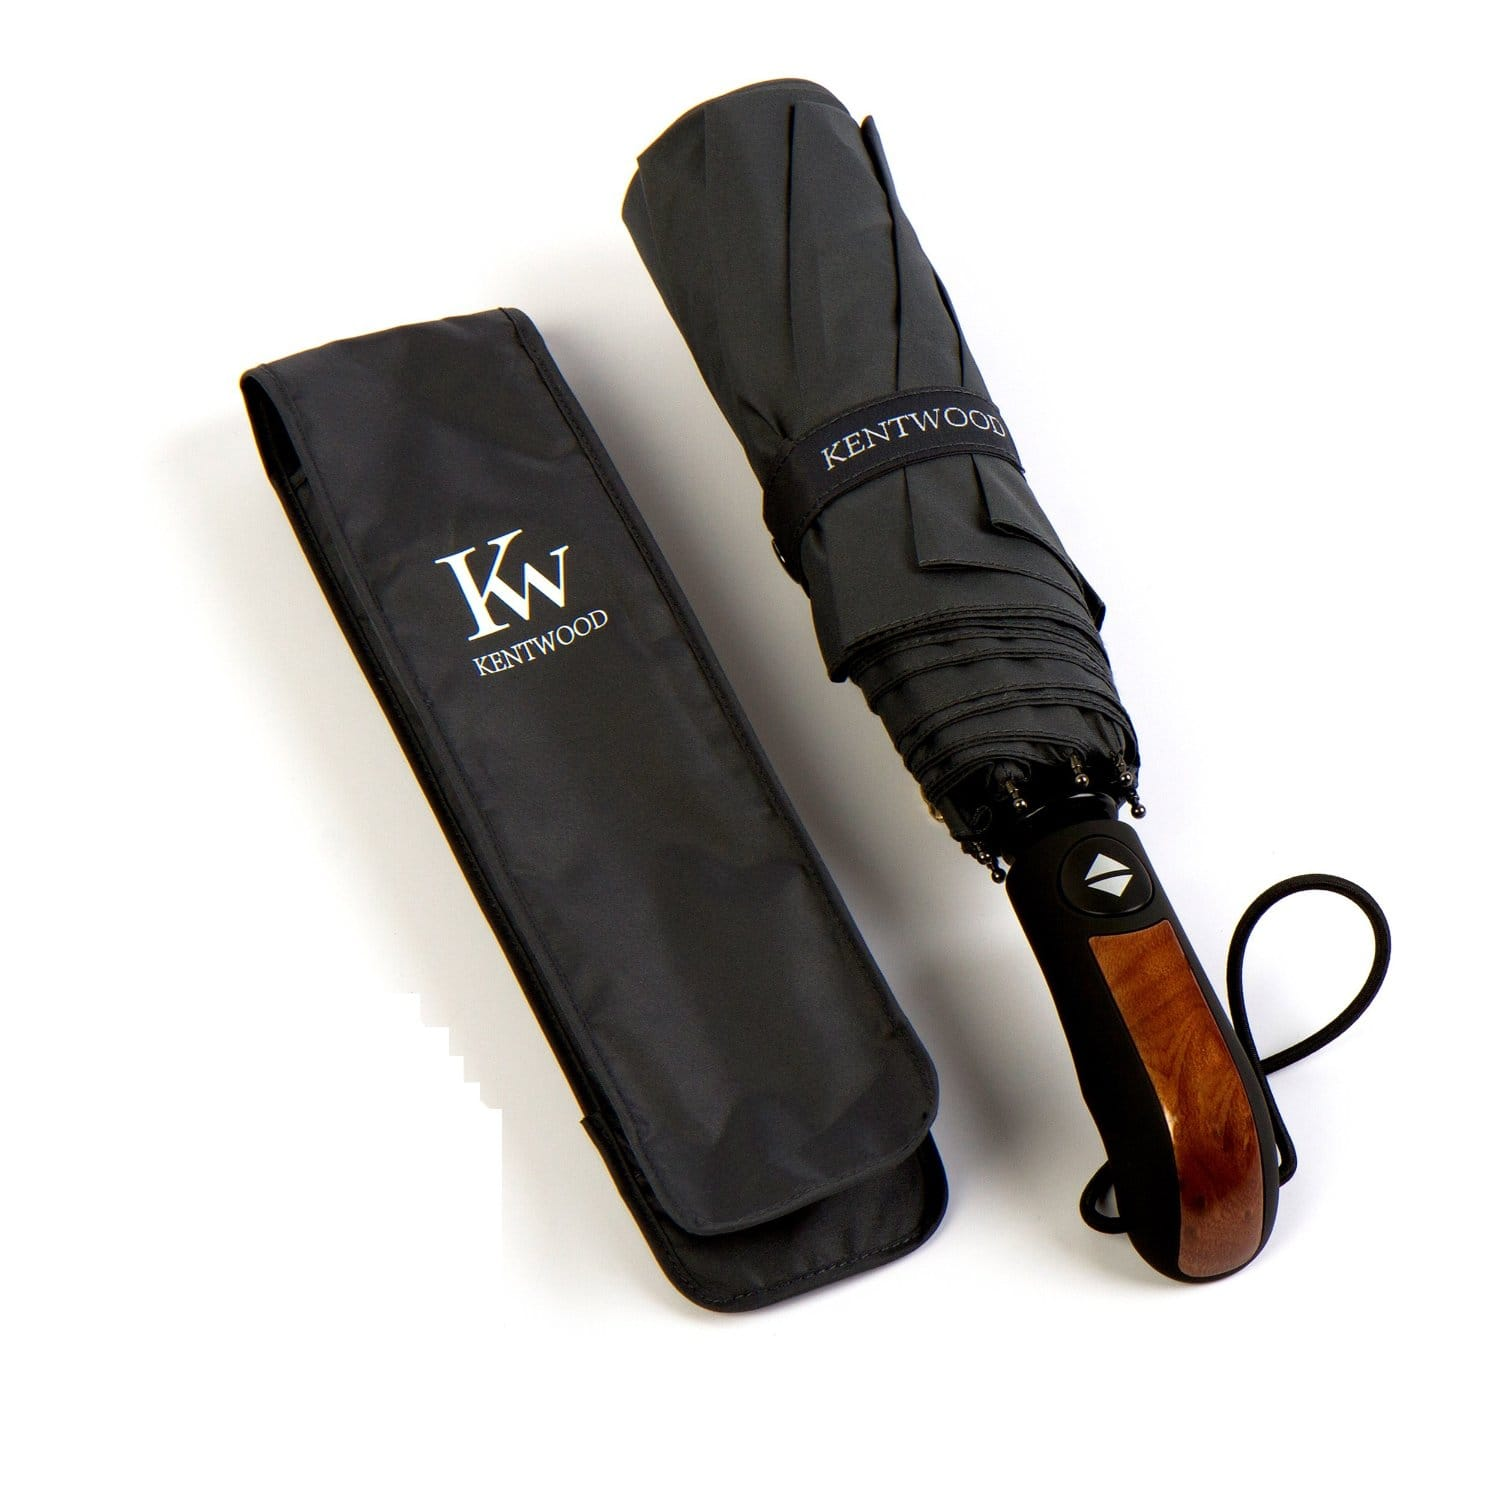 Kentwood Wind Proof Umbrella FREE+FS @ Amazon.com w/ Prime Account